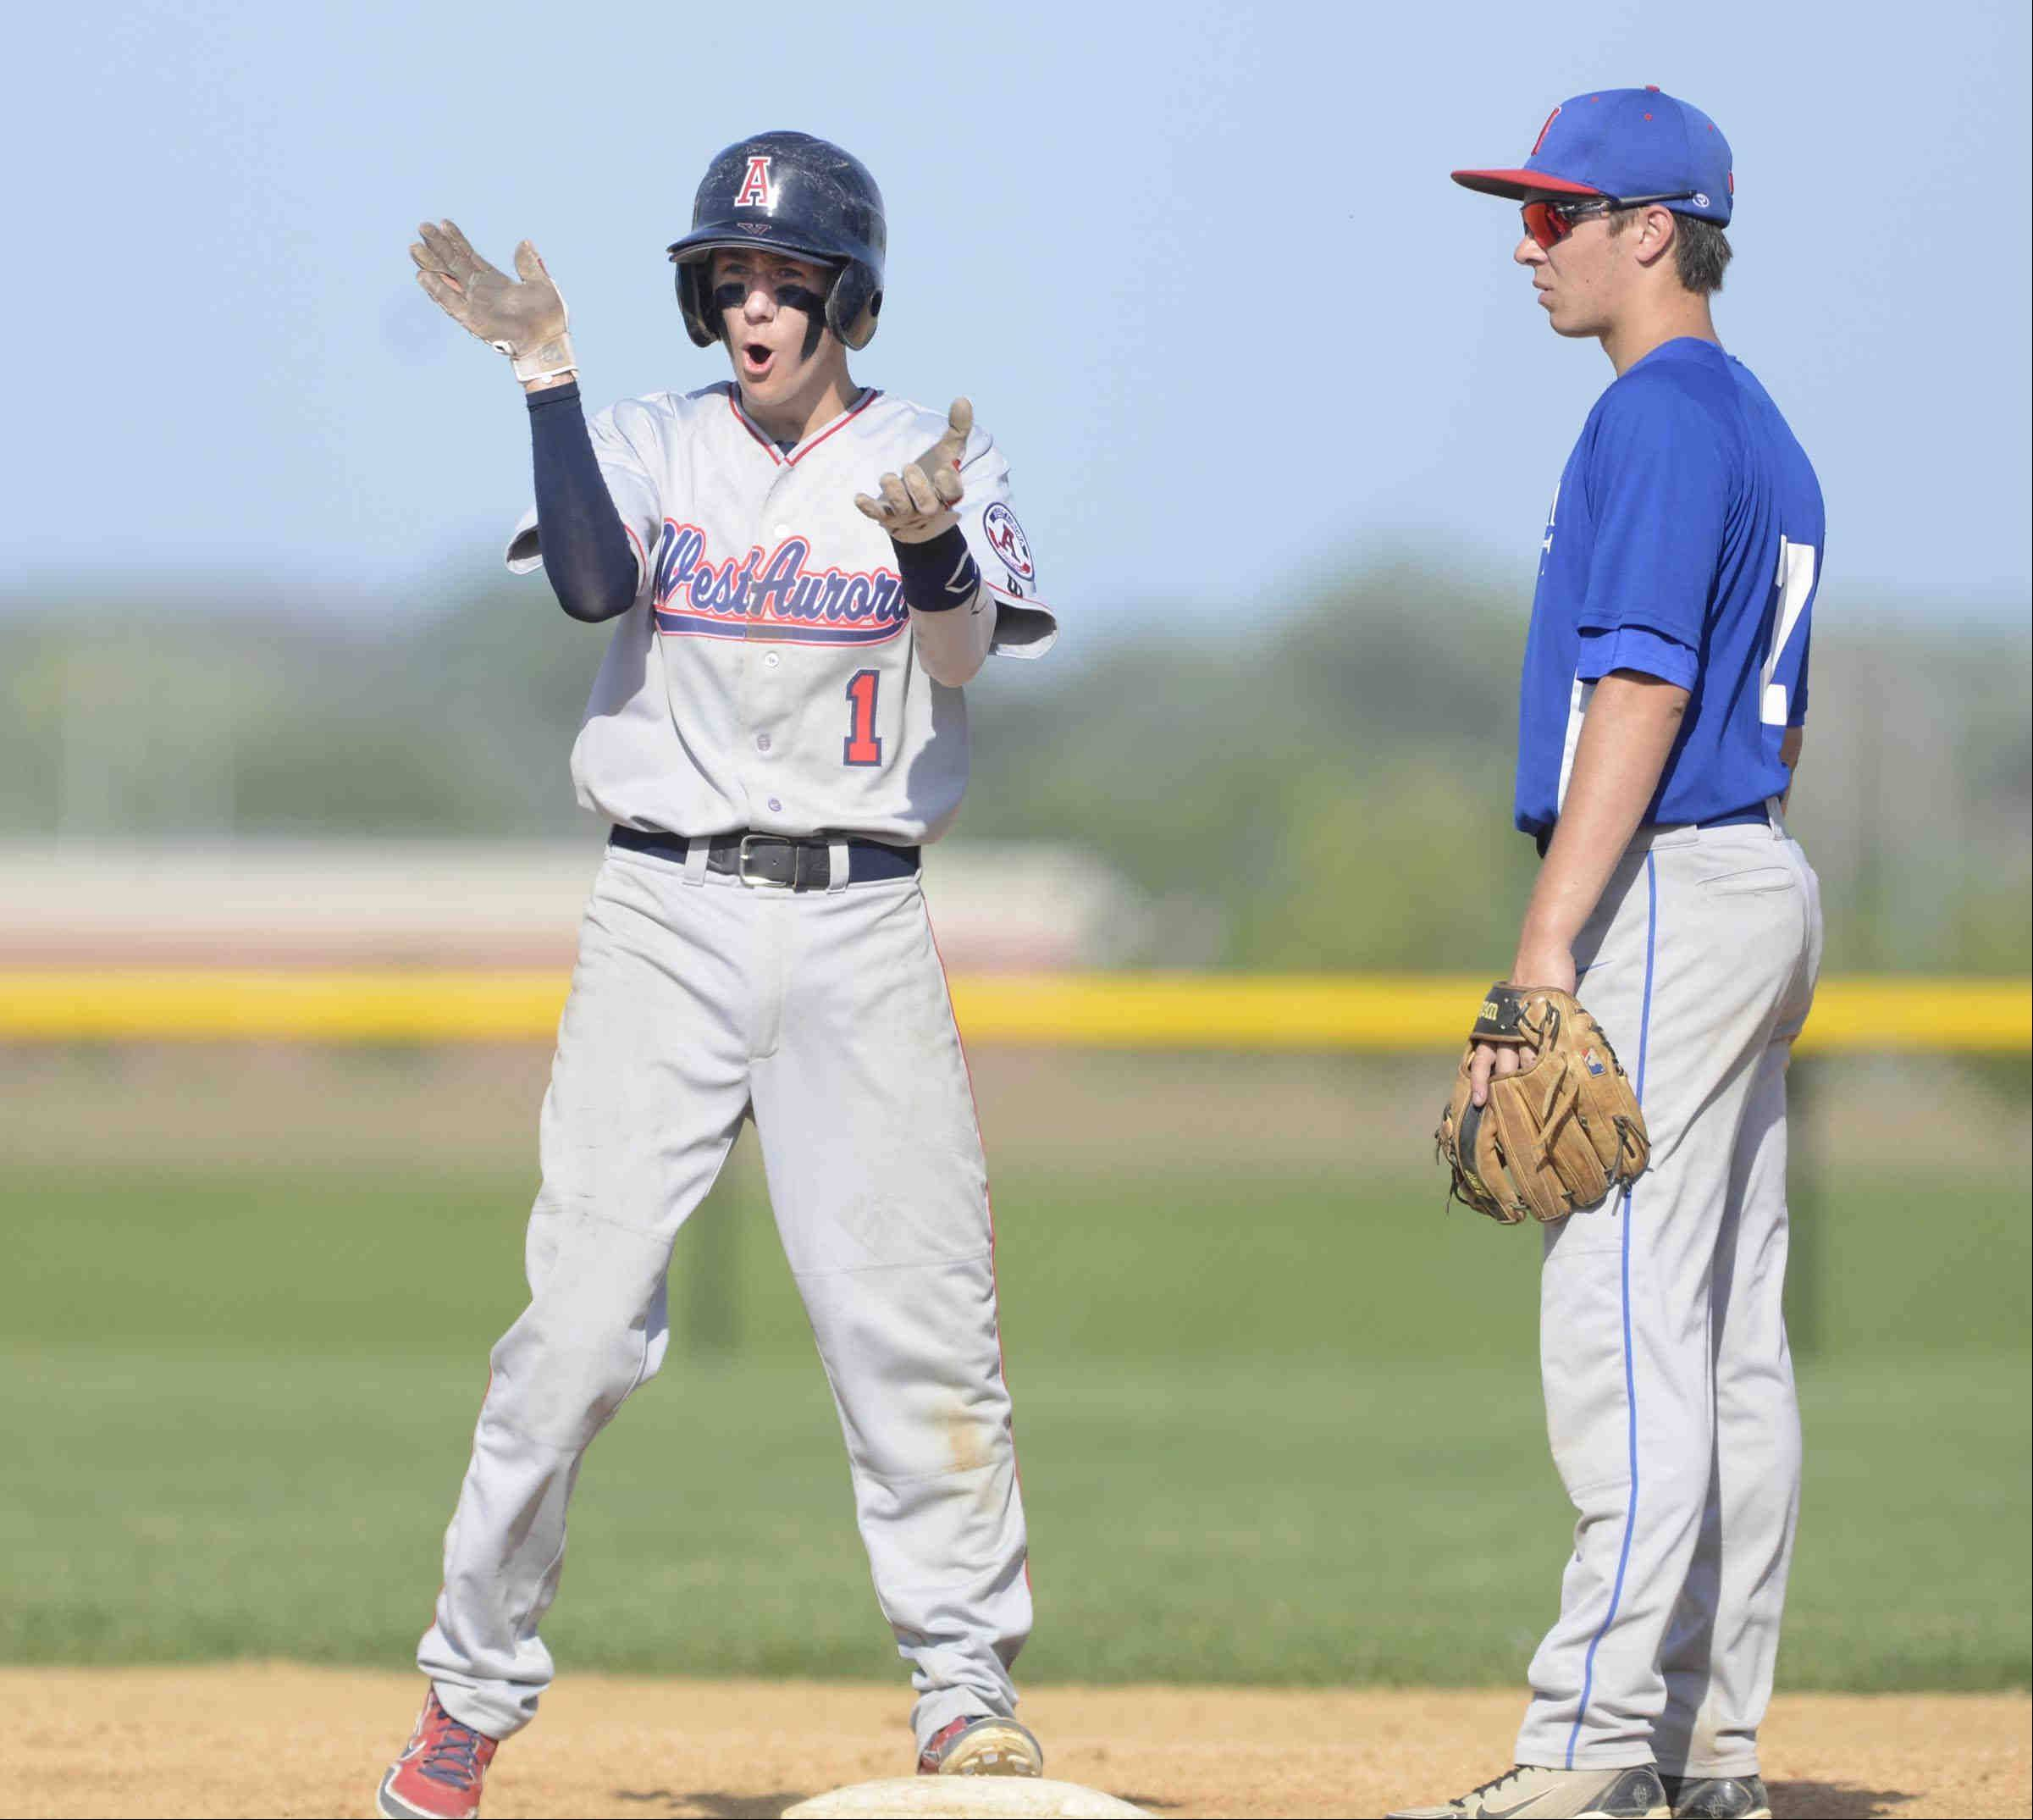 West Aurora's Michael Golich encourages his teammates after hitting a double in the second inning against Marmion Academy Monday in Aurora, as Marmion second baseman Will Dorjath looks on.